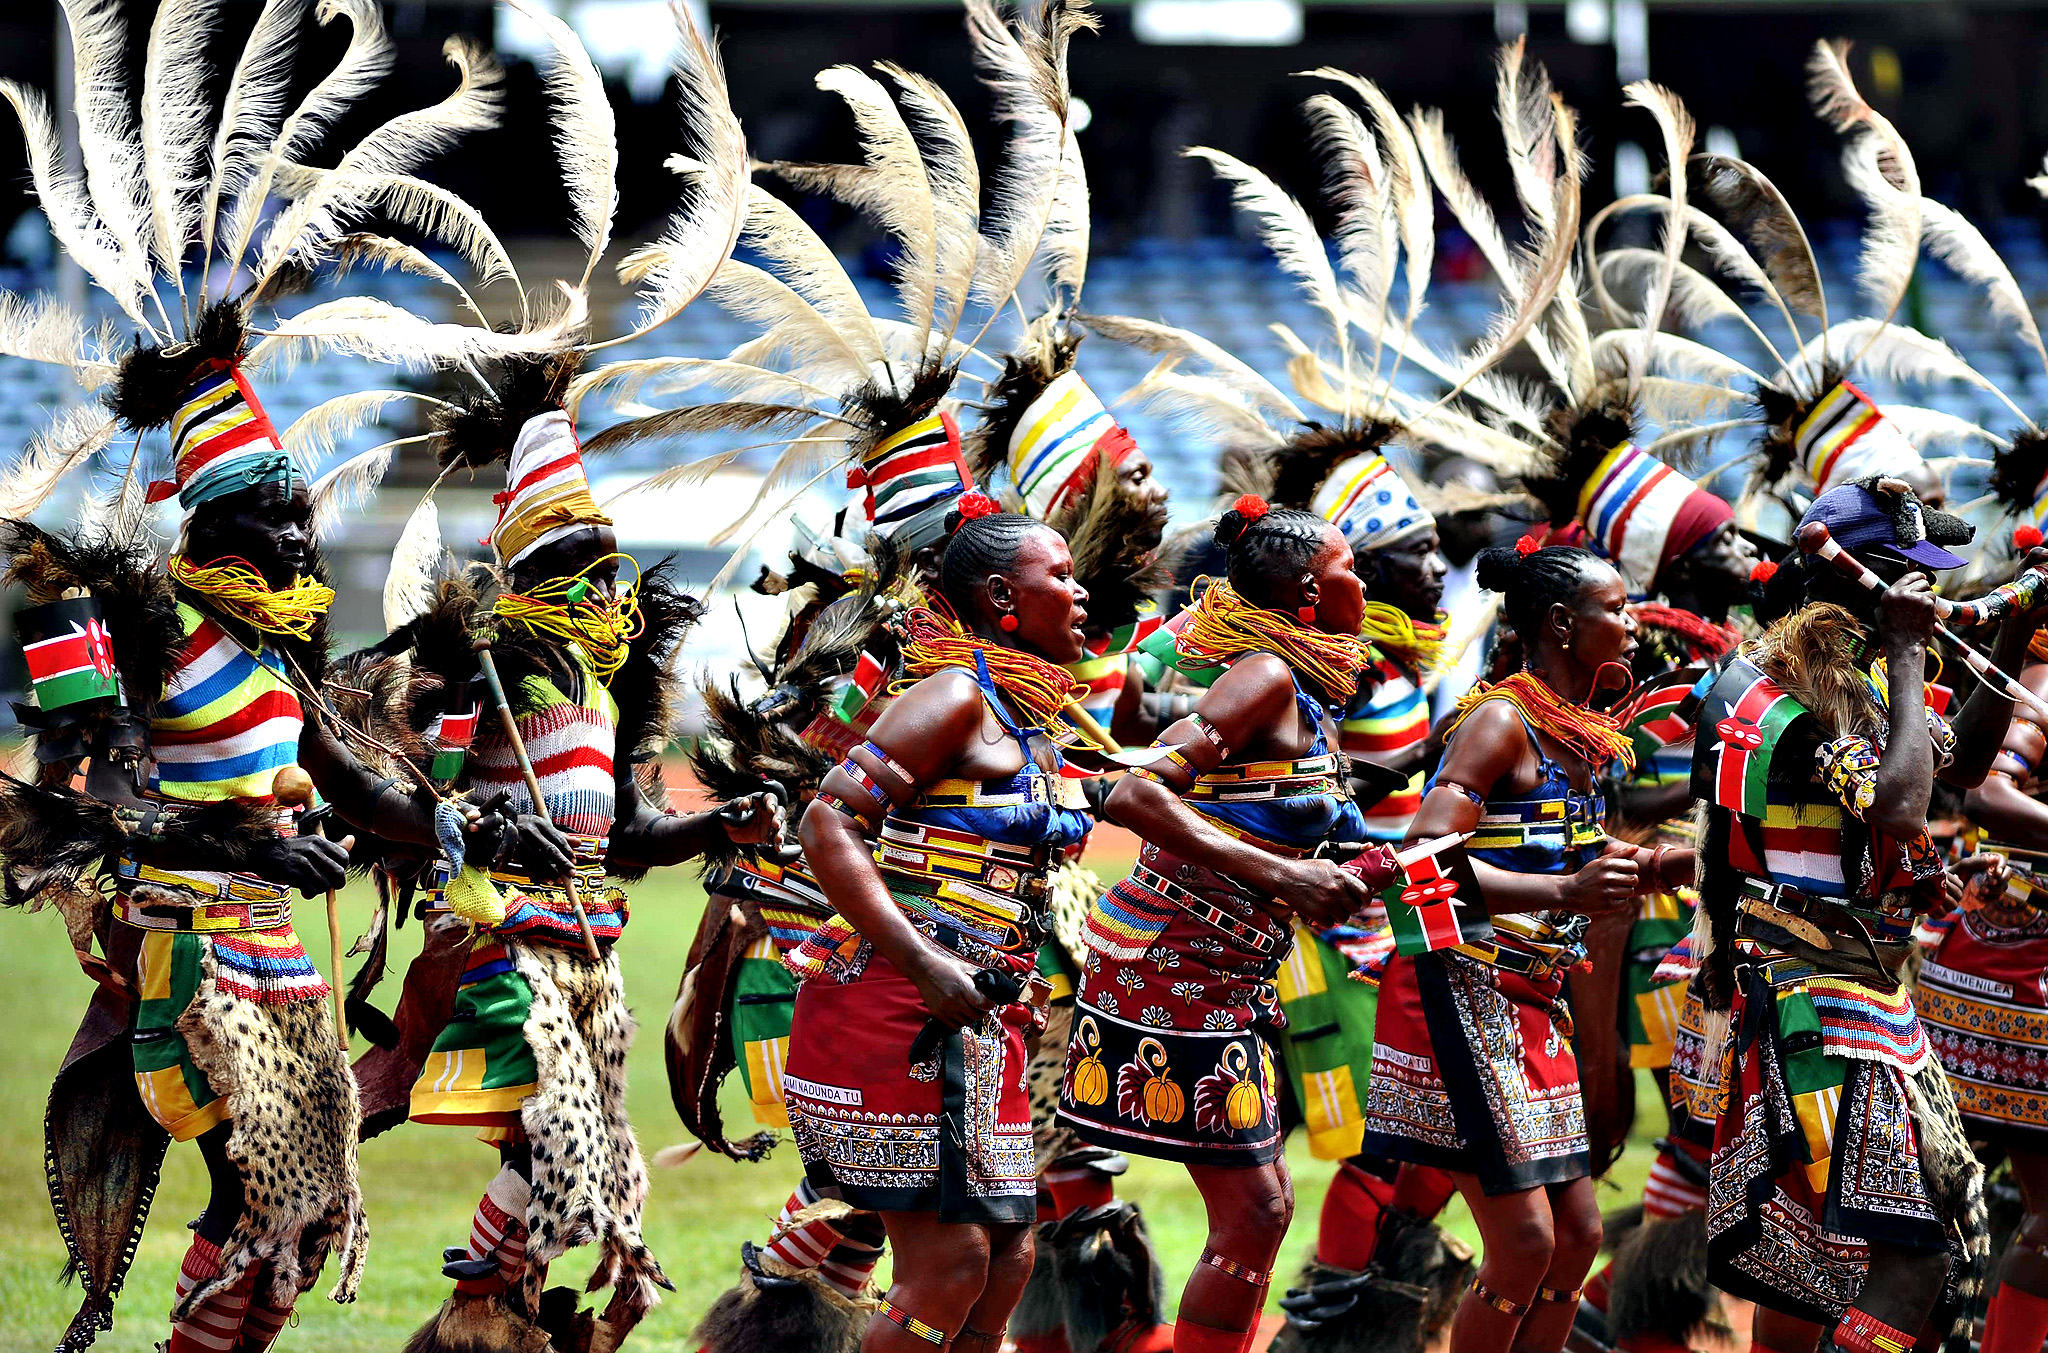 Traditional dancers perform at the Kasarani stadium in Nairobi on December 12, 2013 during celebrations marking half a century of independence from Britain. Kenyans marked 50 years of independence, celebrating progress of the regional economic powerhouse but also struggling to shake off a legacy of corruption, inequality and ethnic violence.